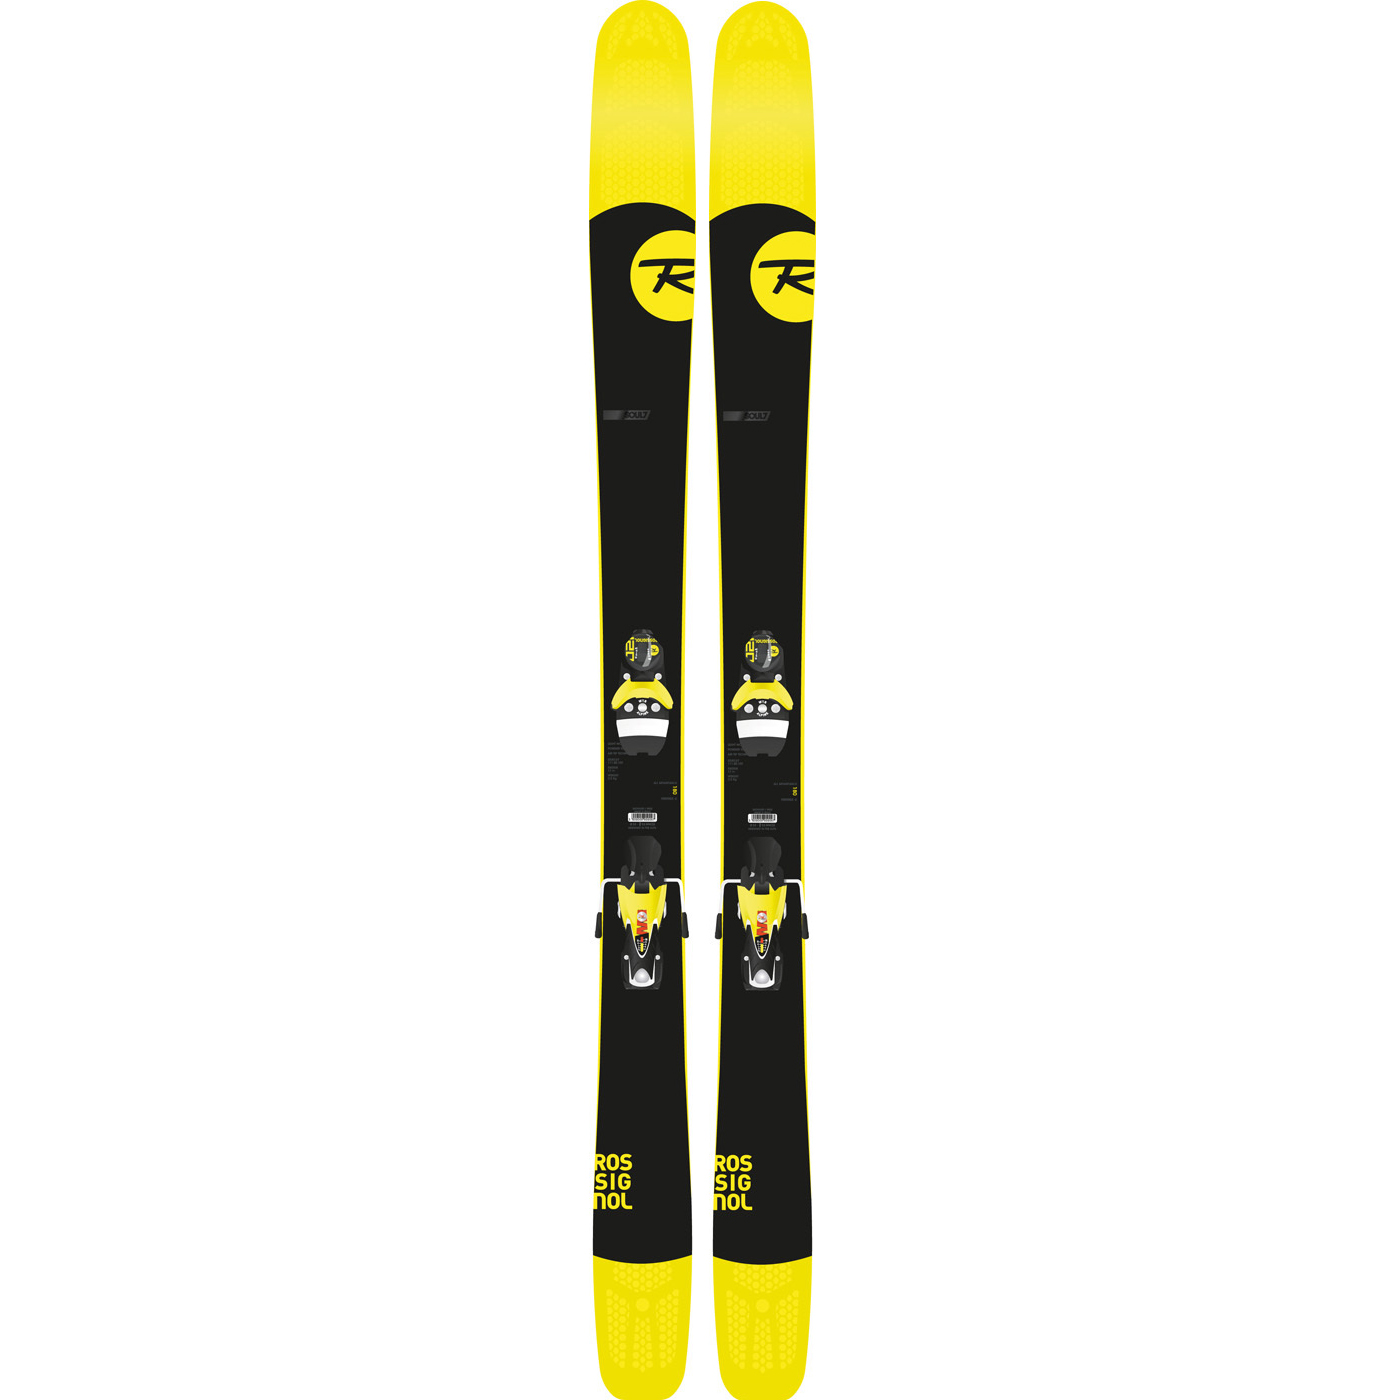 Rossignol S97 Freeride 2011 - Ski-Review.com